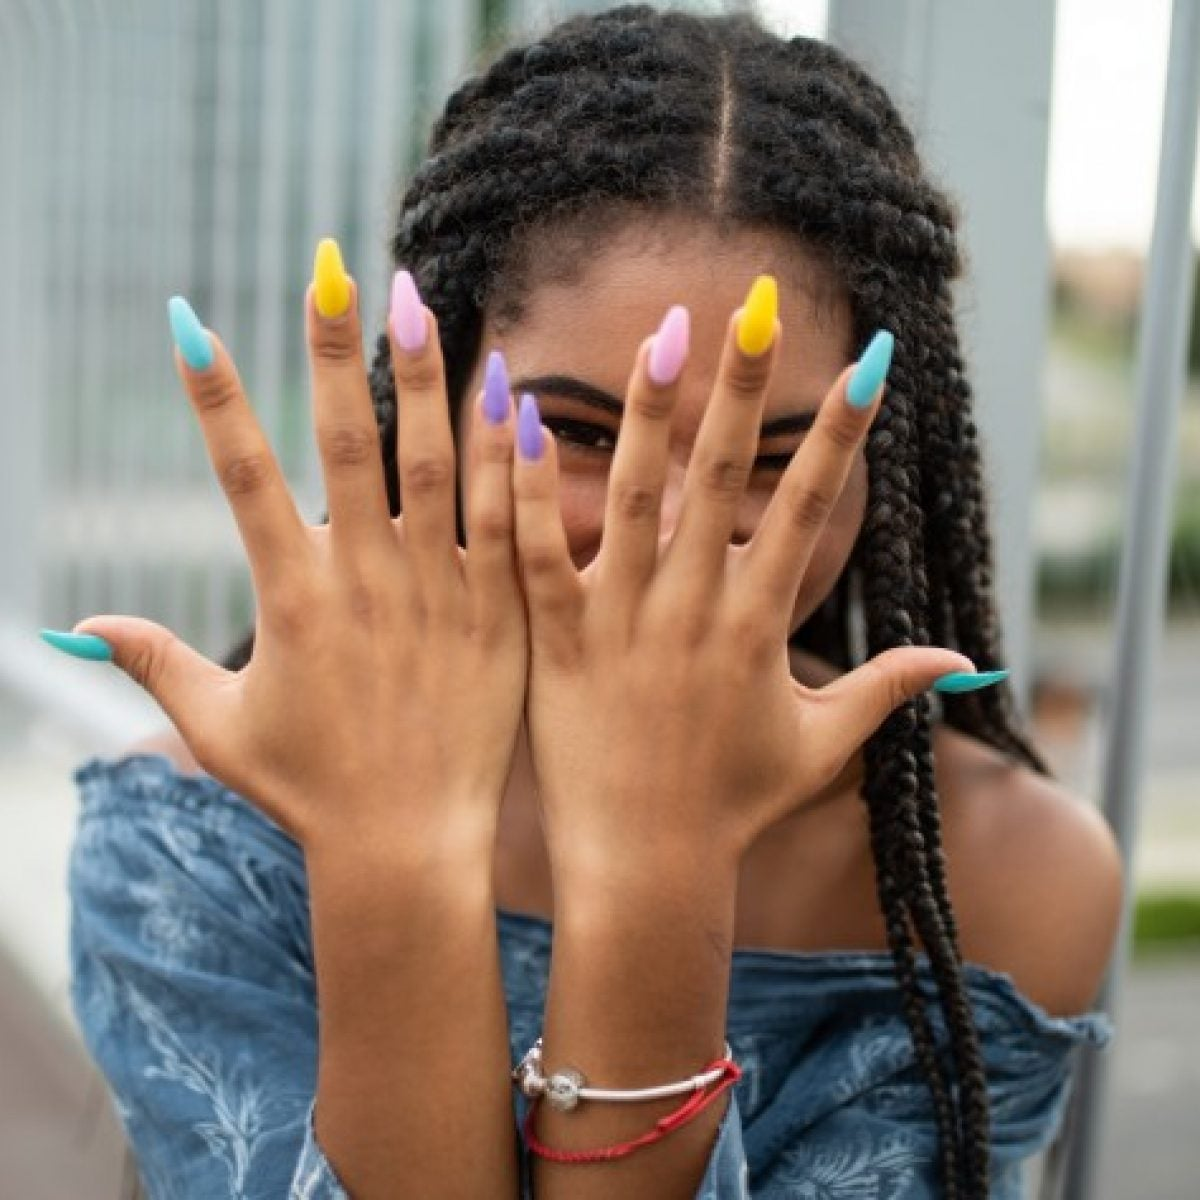 Nail Artist Jaree Vinson Shares How To Get Nails Healthy For Spring